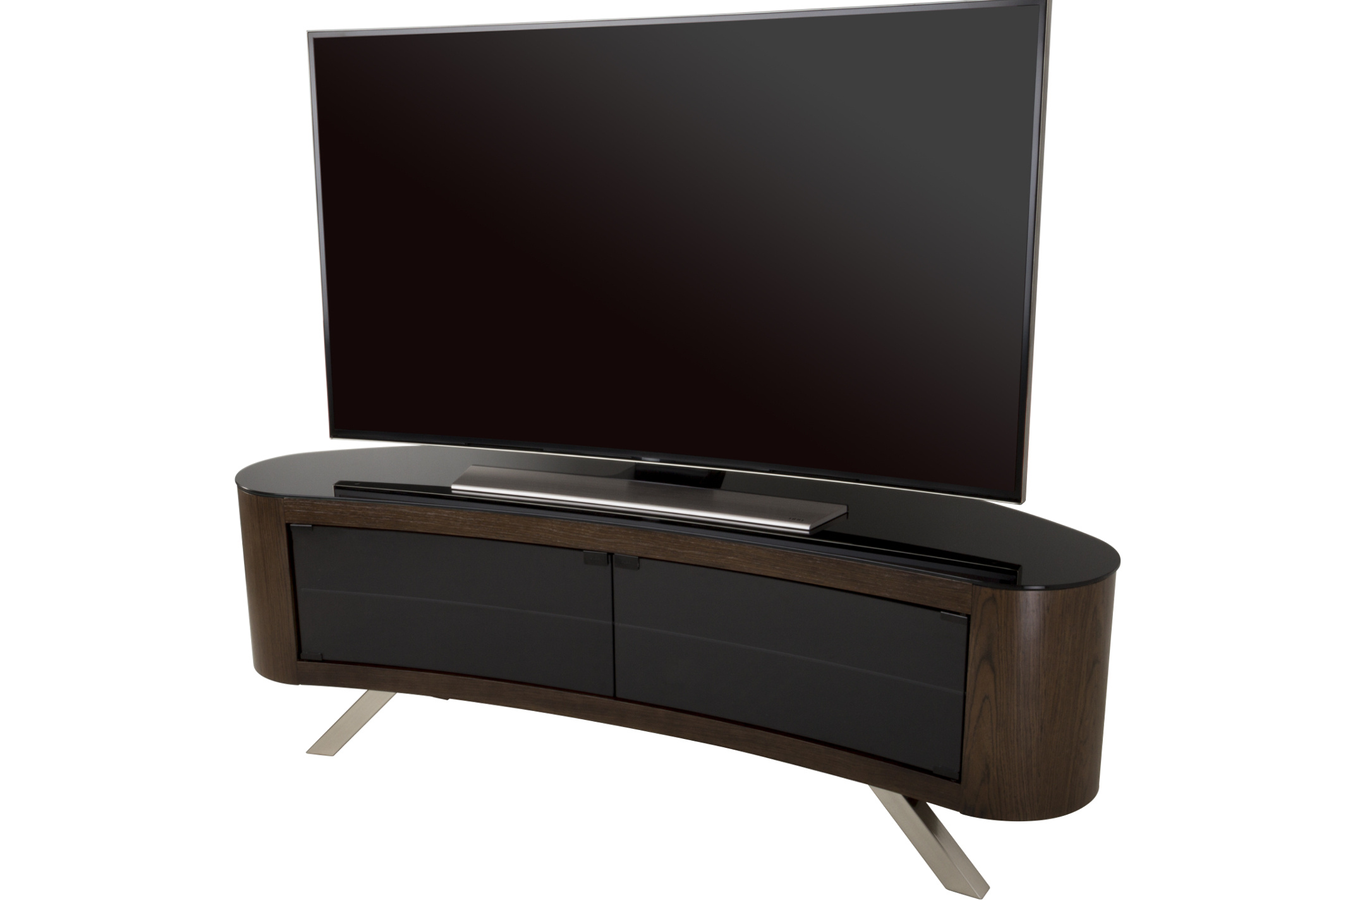 meuble tv affinity fs1500bayw noyer fs1500bayw meuble tv avf support t l vision t l viseur. Black Bedroom Furniture Sets. Home Design Ideas